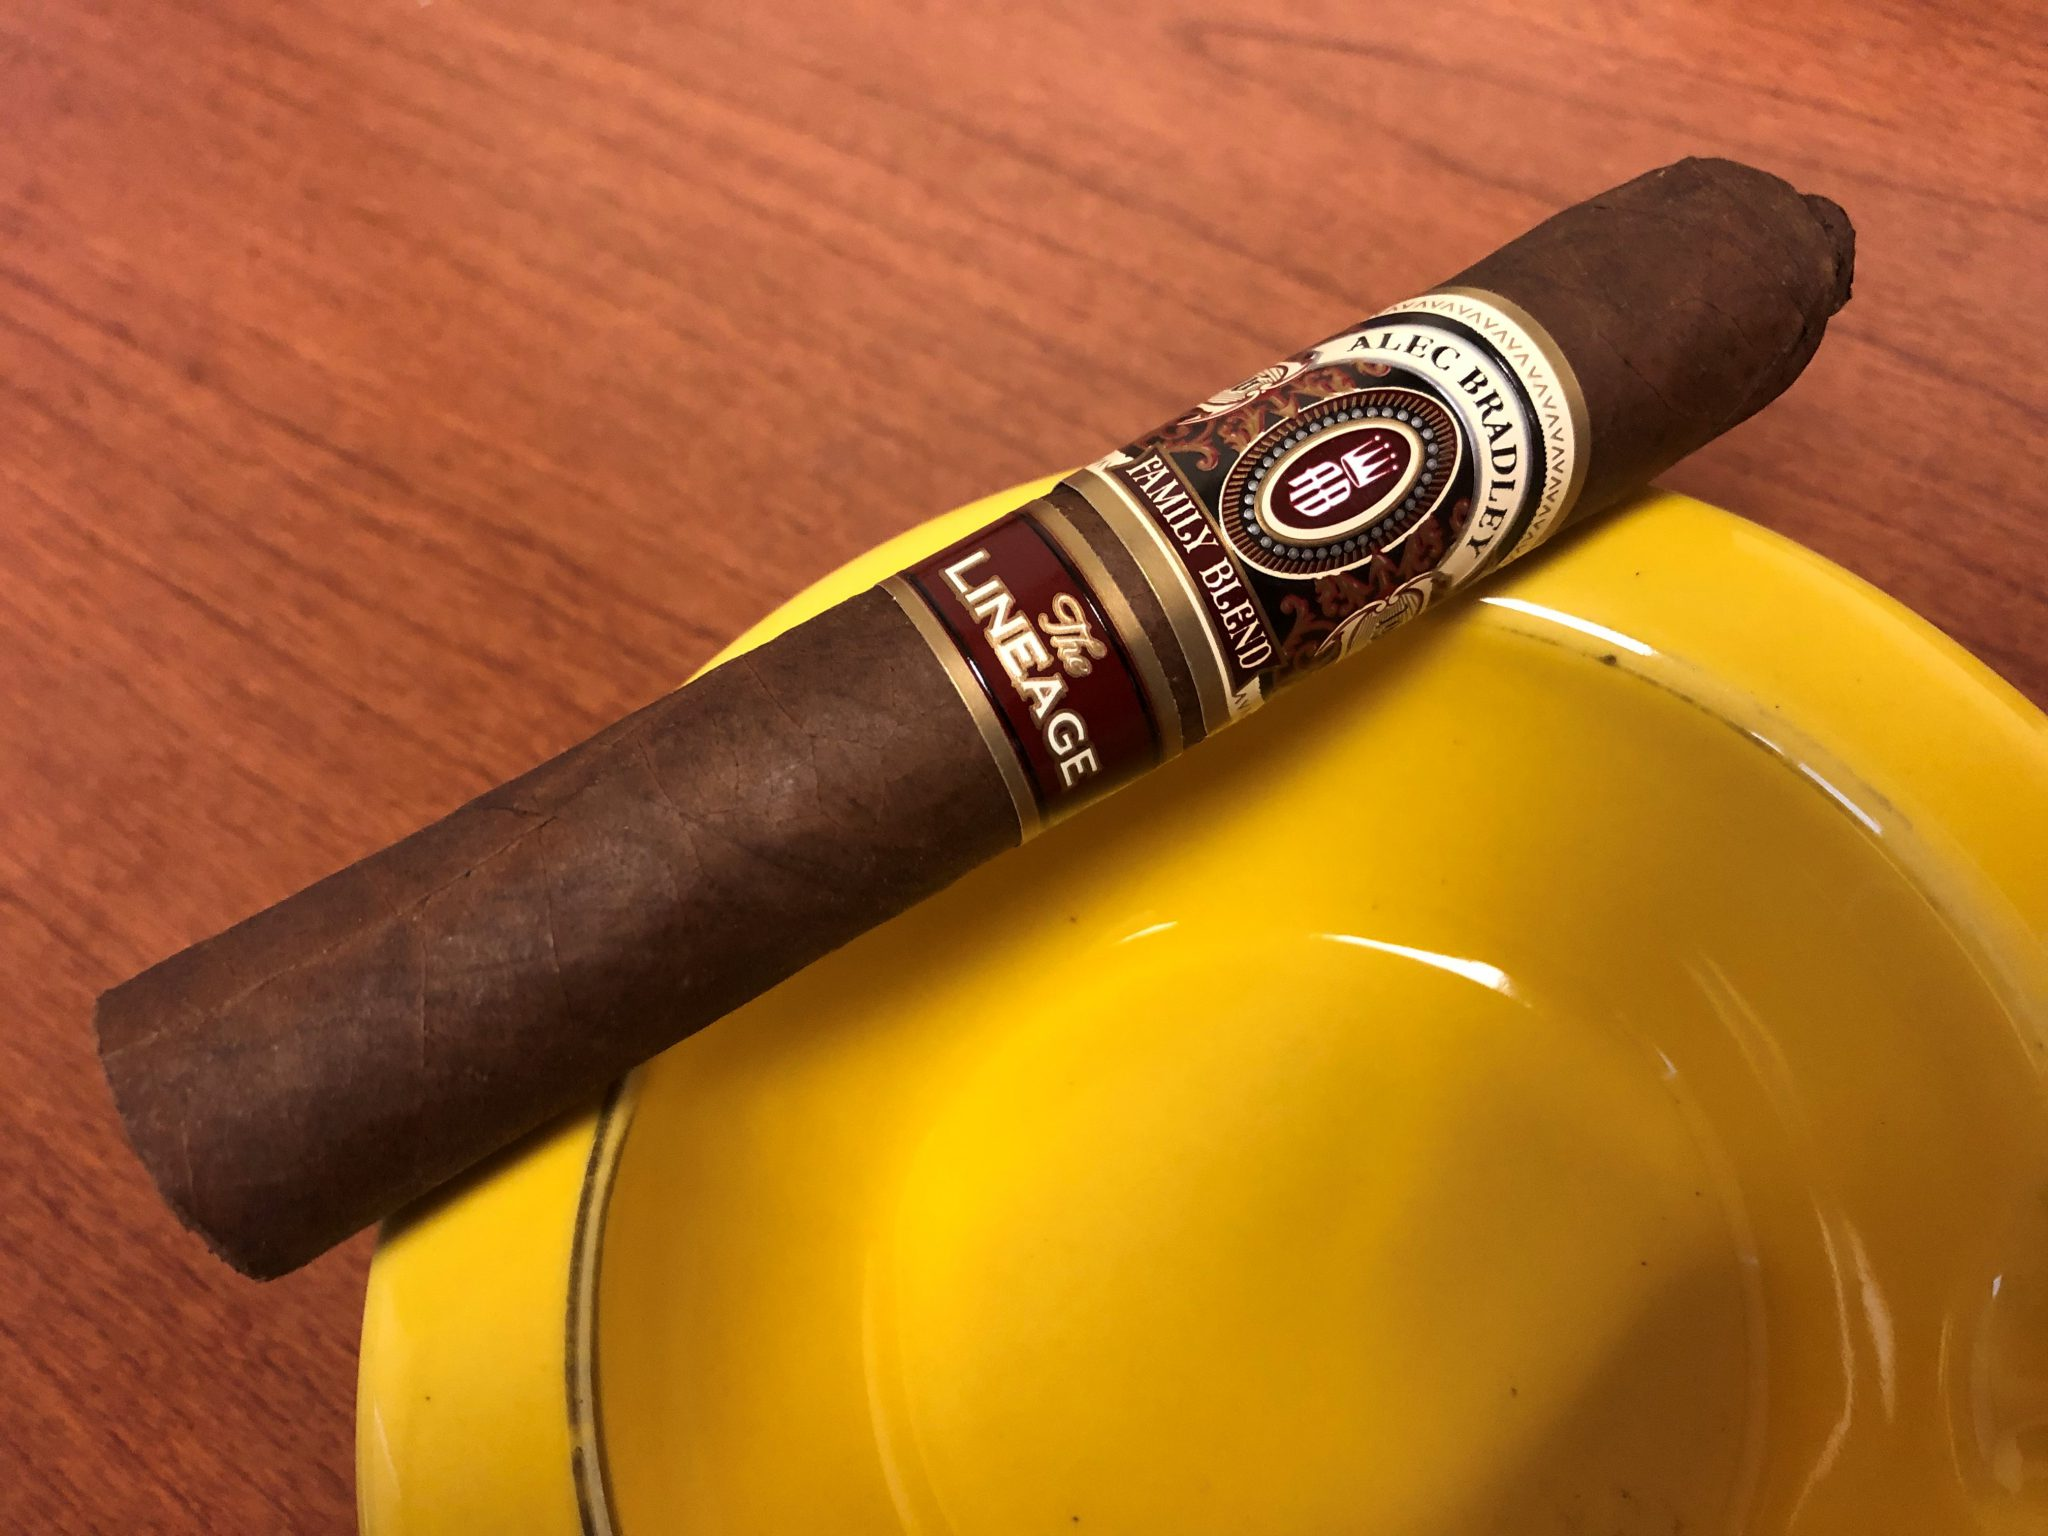 alec bradley cigars guide alec bradley the lineage robusto cigar review by Jared Gulick